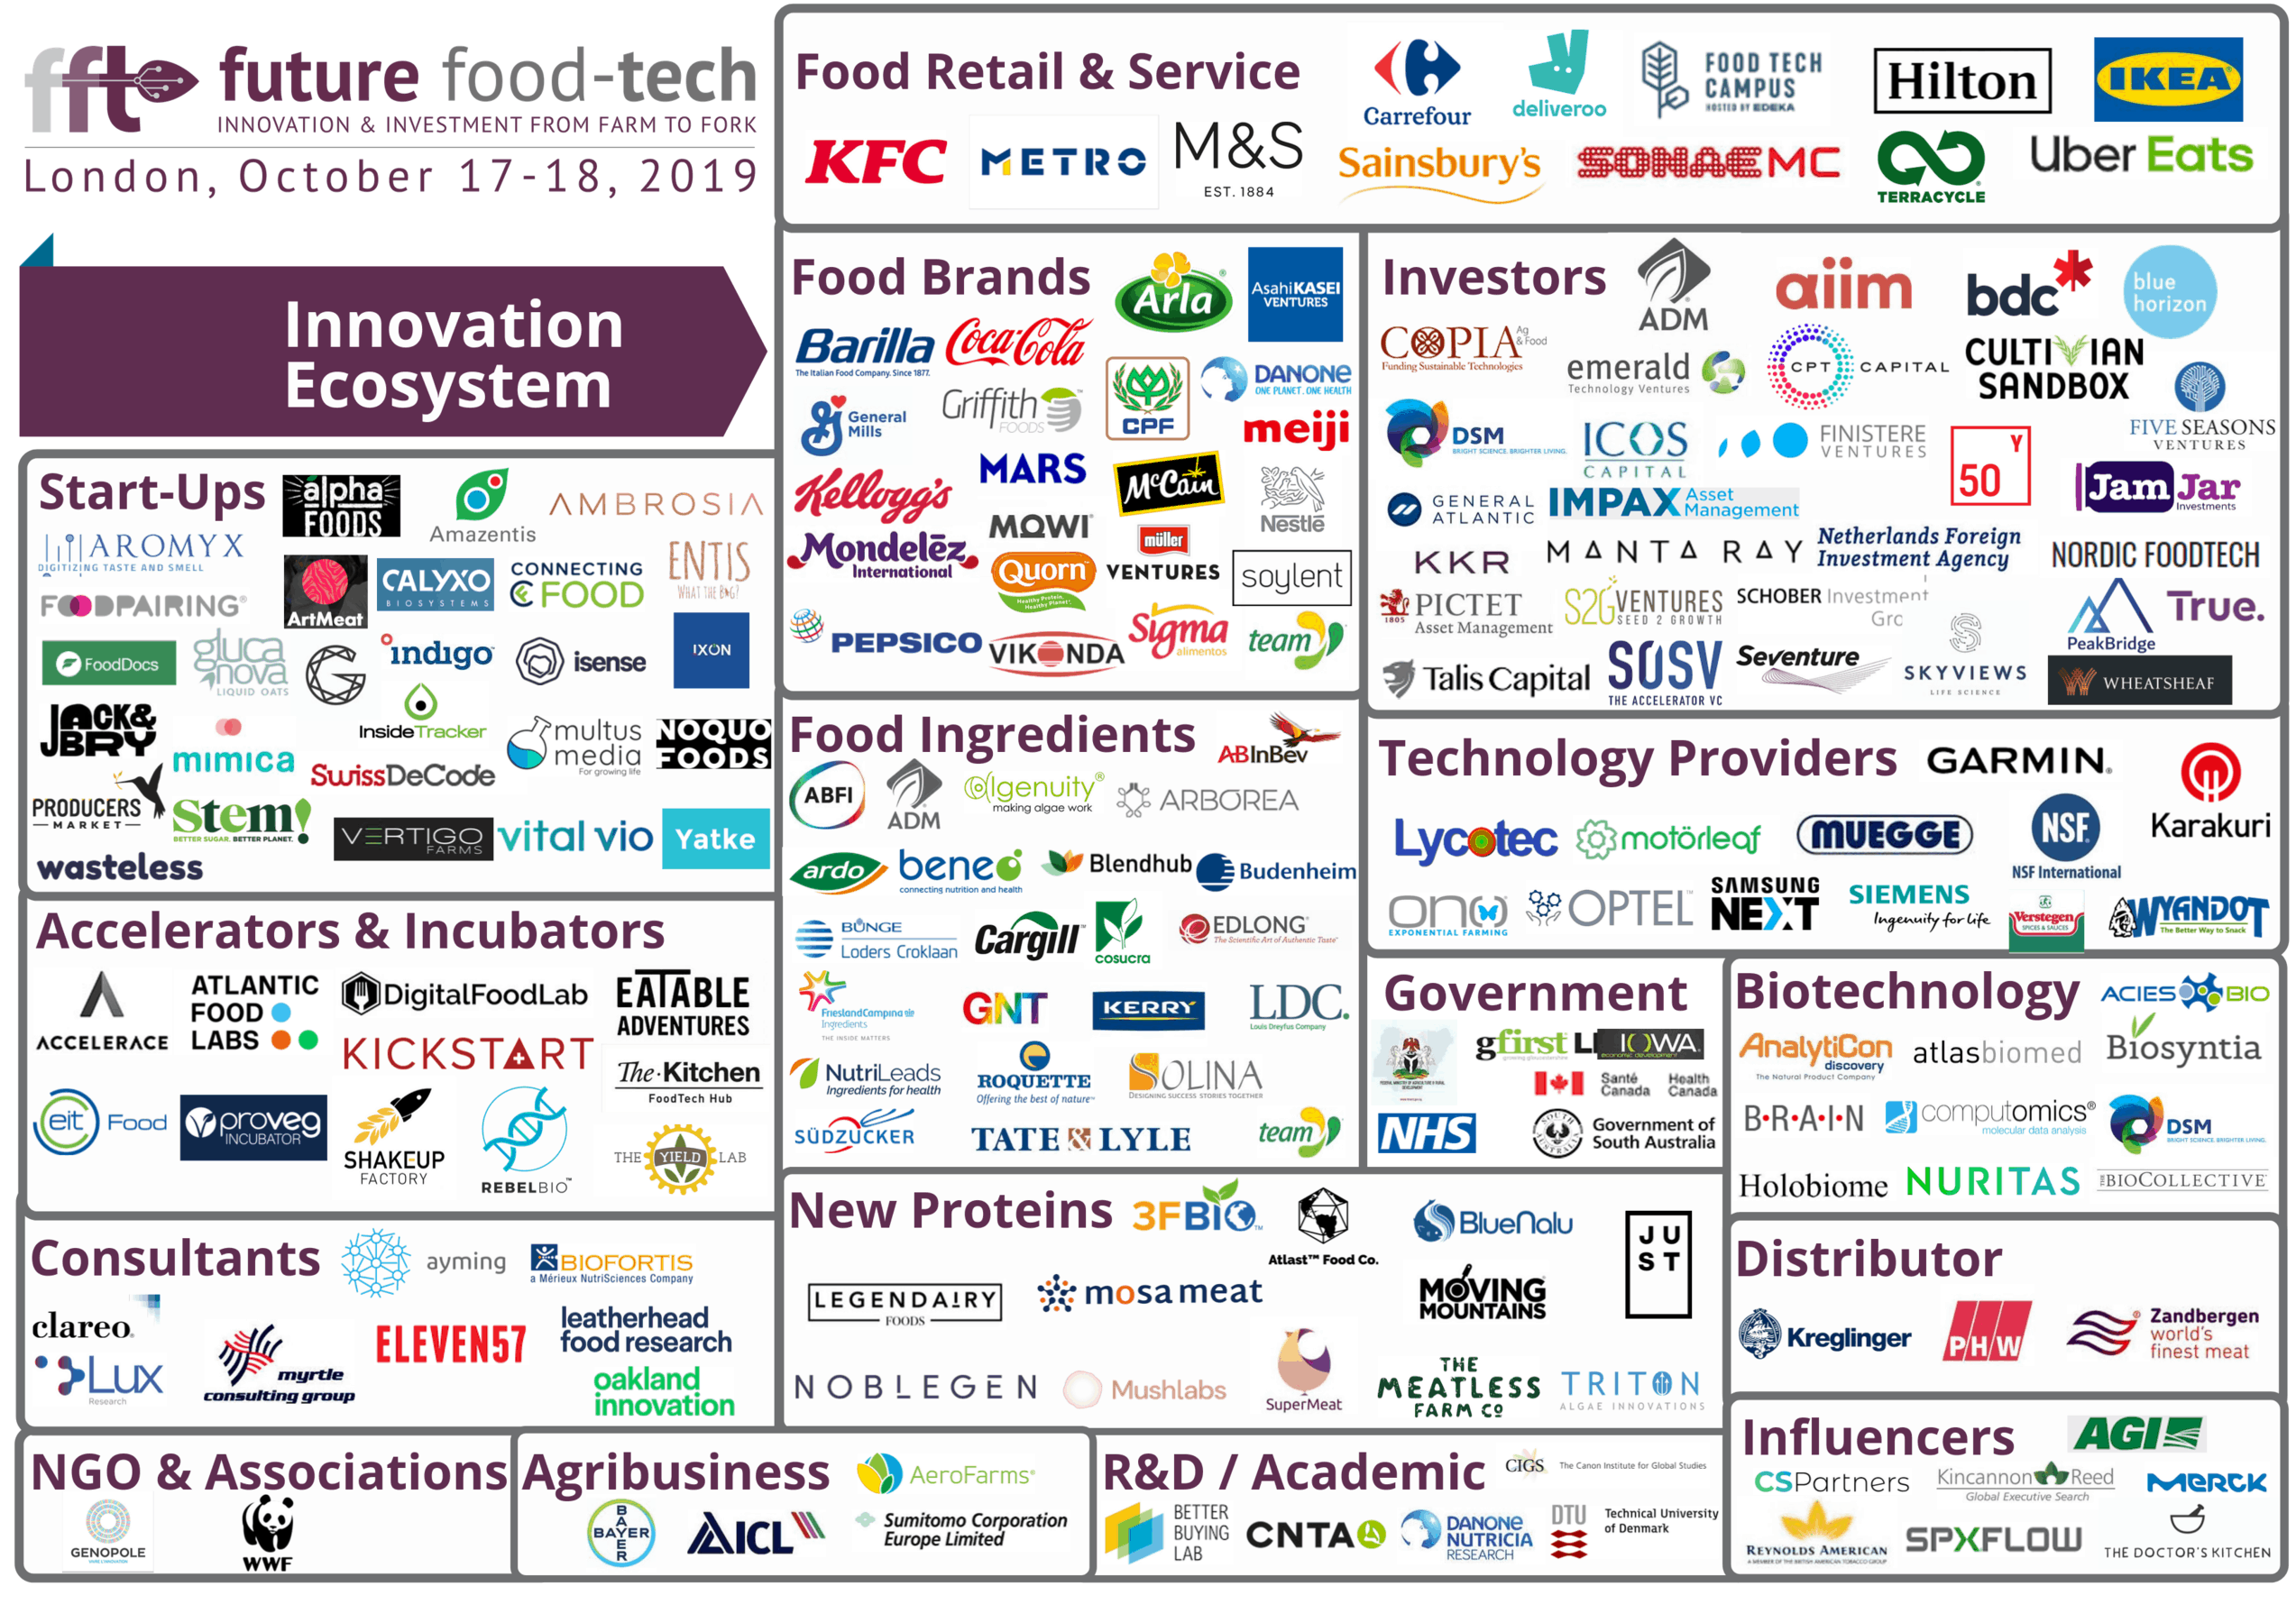 Lycotec CEO, Dr Ivan Petyaev to attend The Future Food-Tech Summit